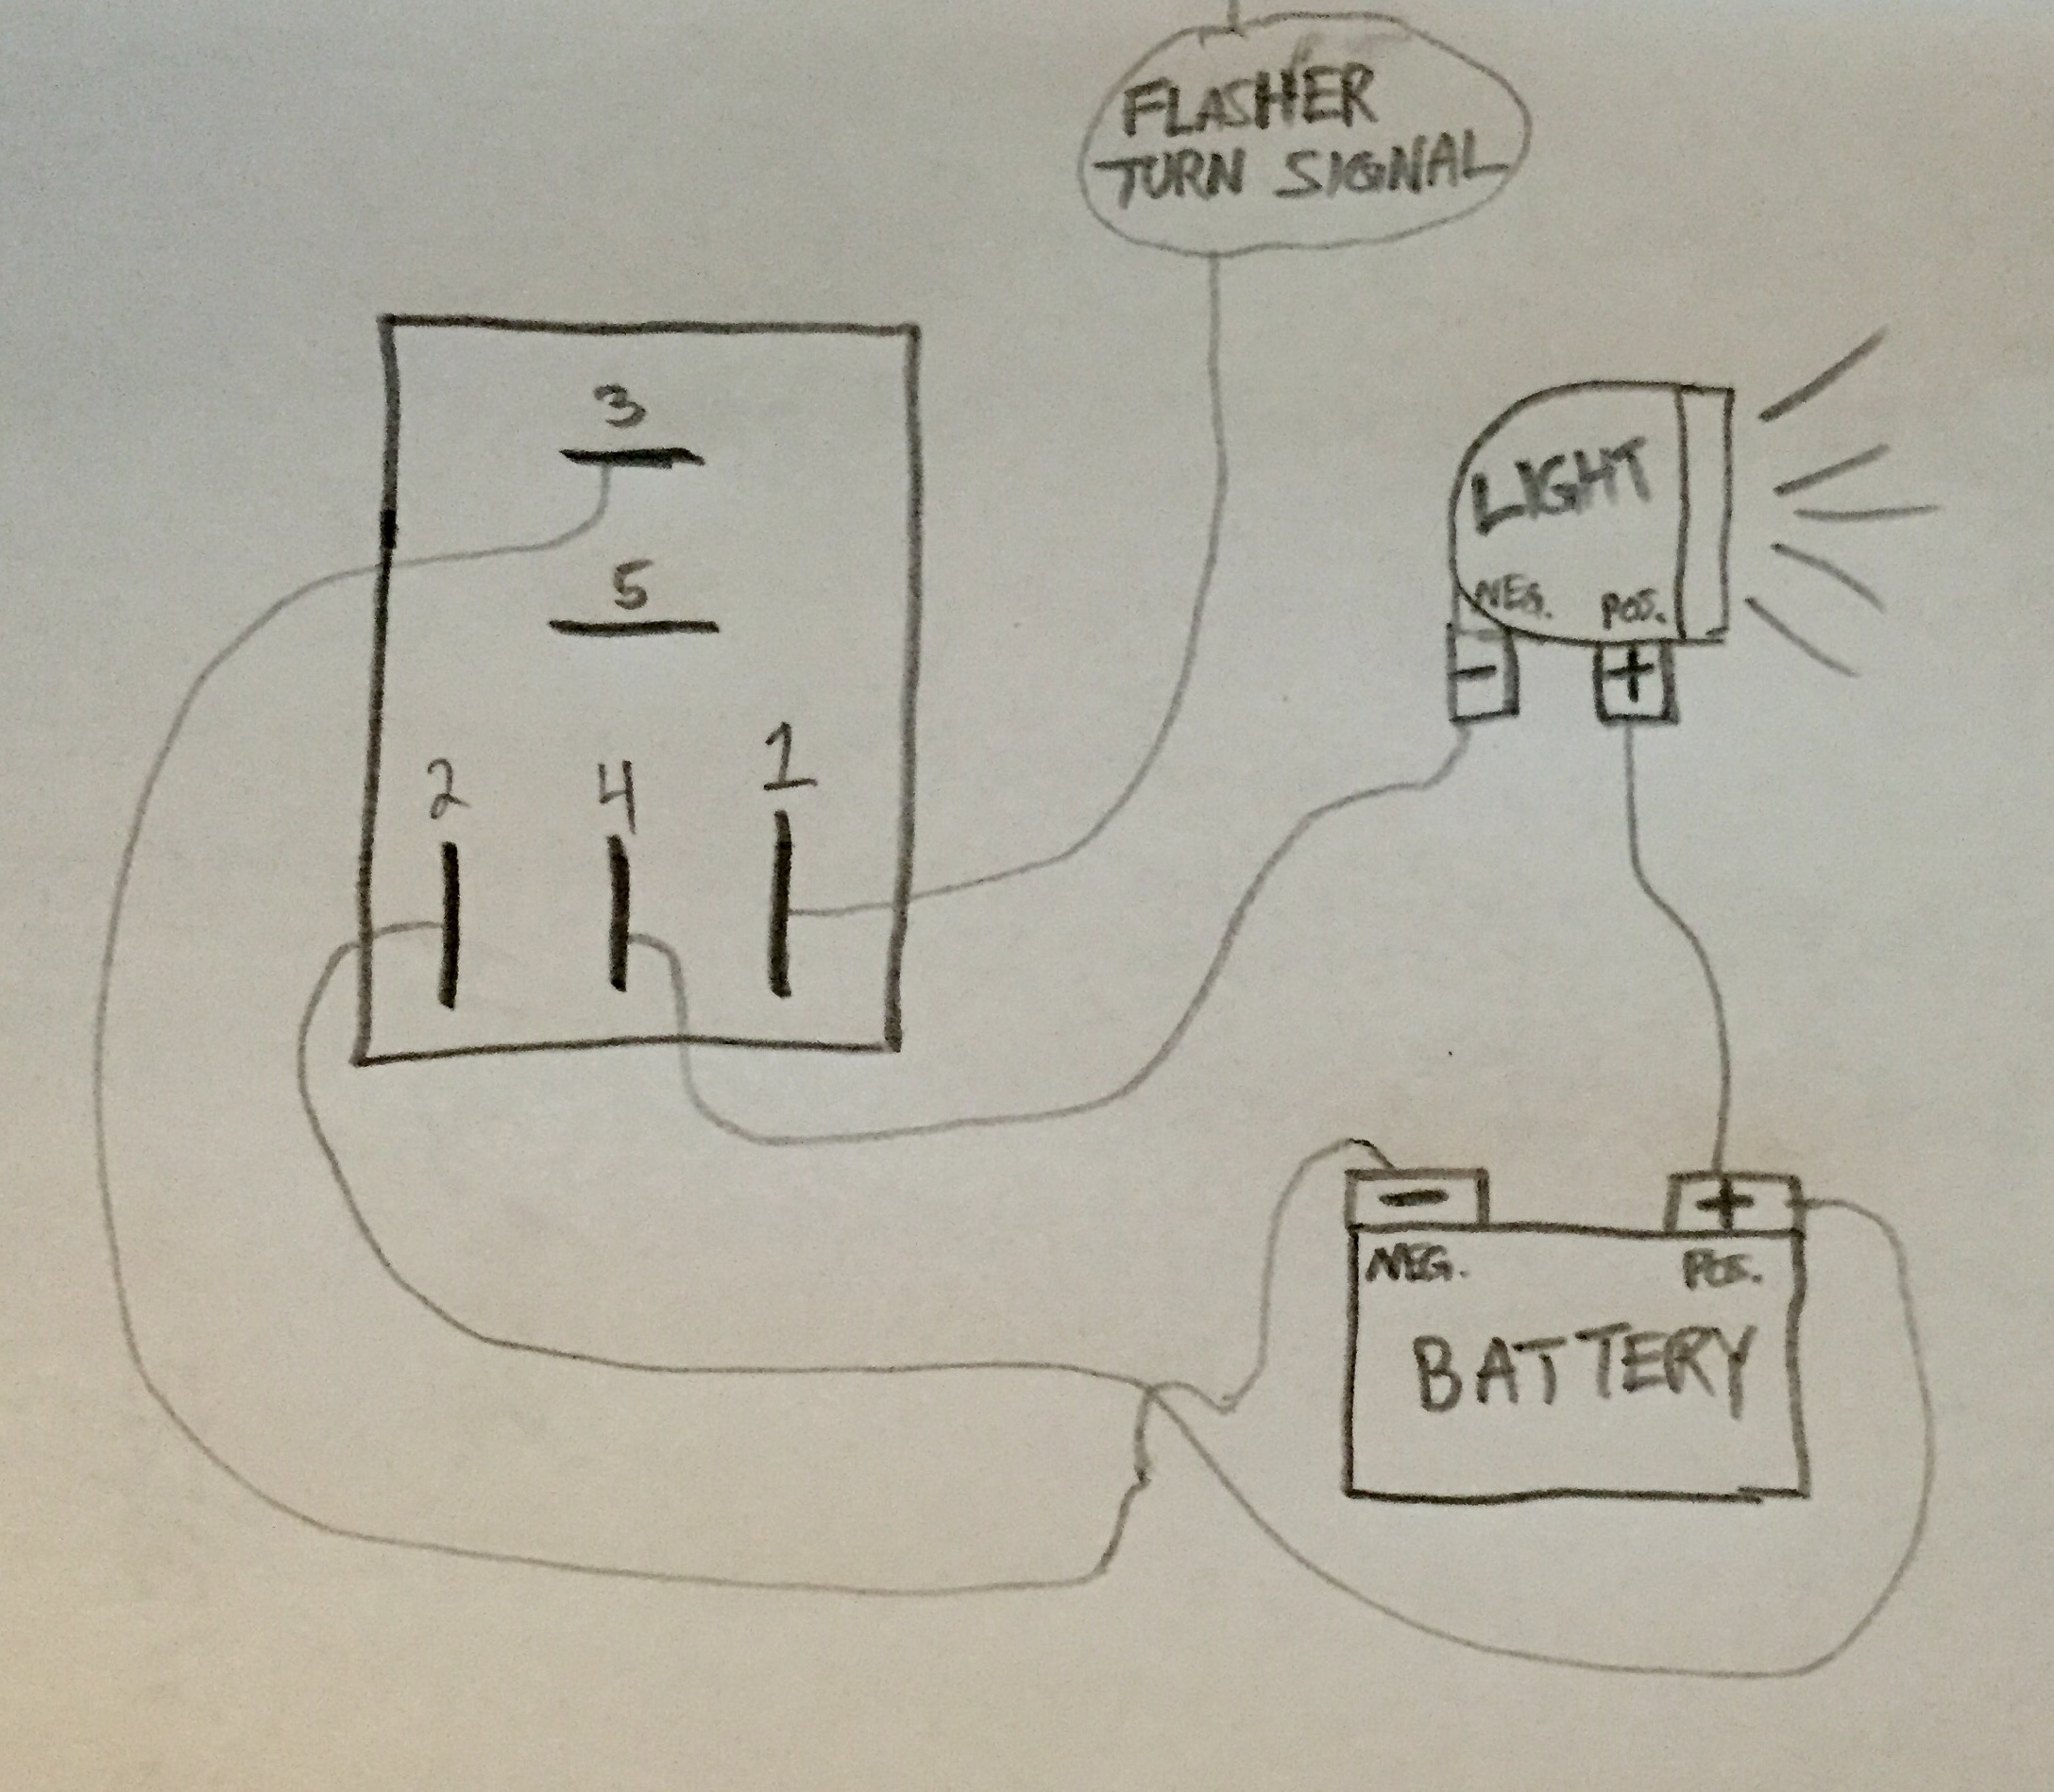 Running Lights Turn Signals Always On Simple Wiring Diagram. Wiring. Wiring Diagram For Blinkers At Scoala.co